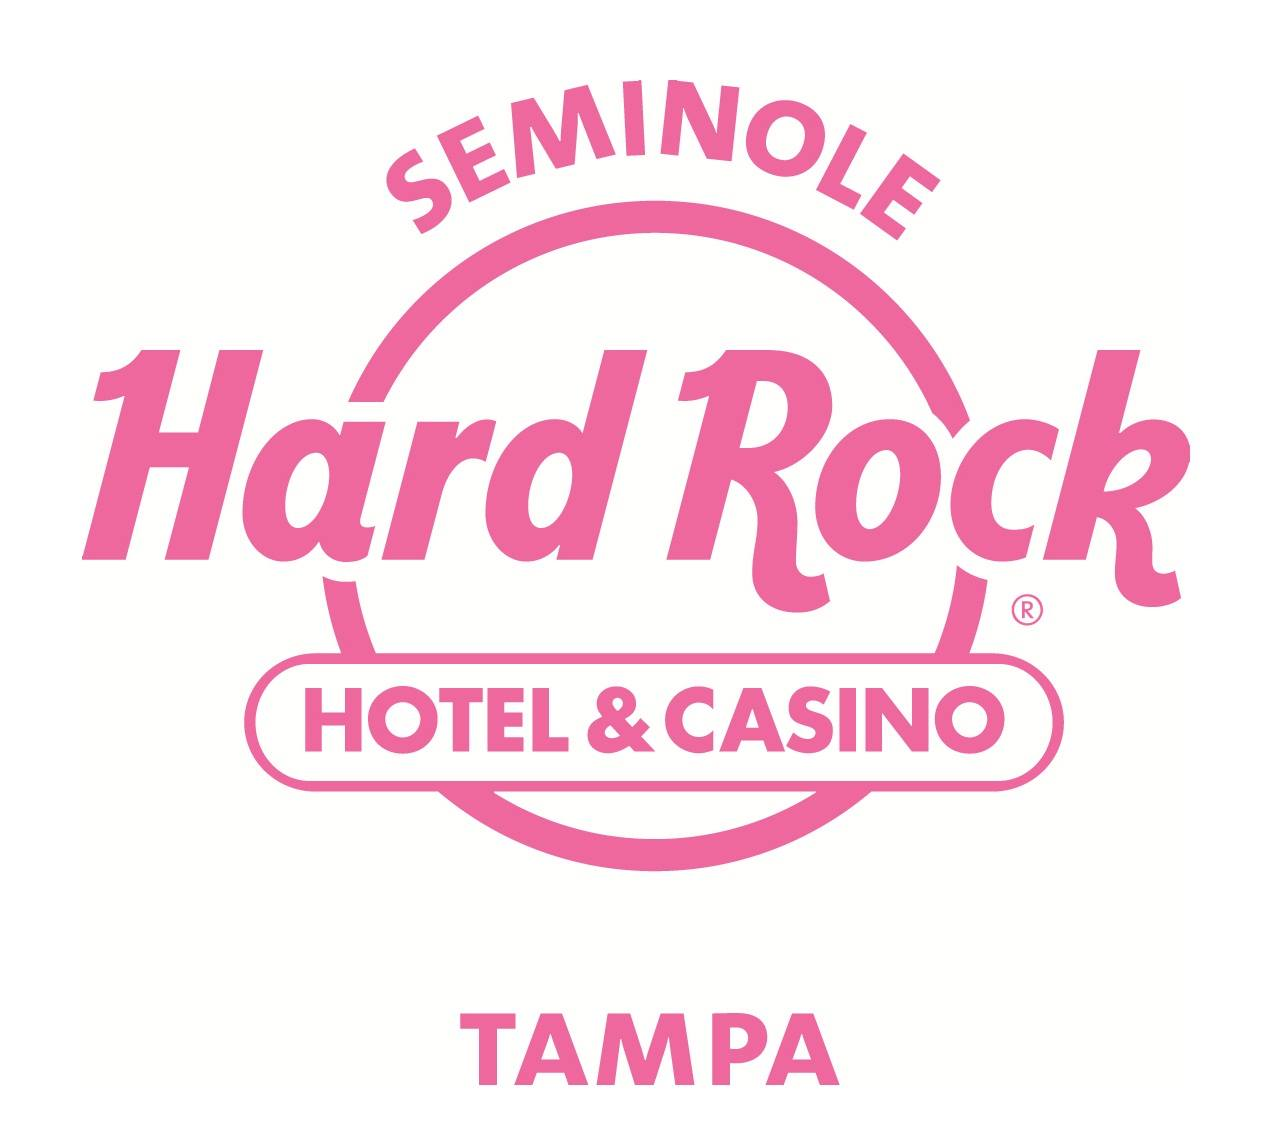 I Run For Wine: It's Pinktober at Seminole Hard Rock Tampa